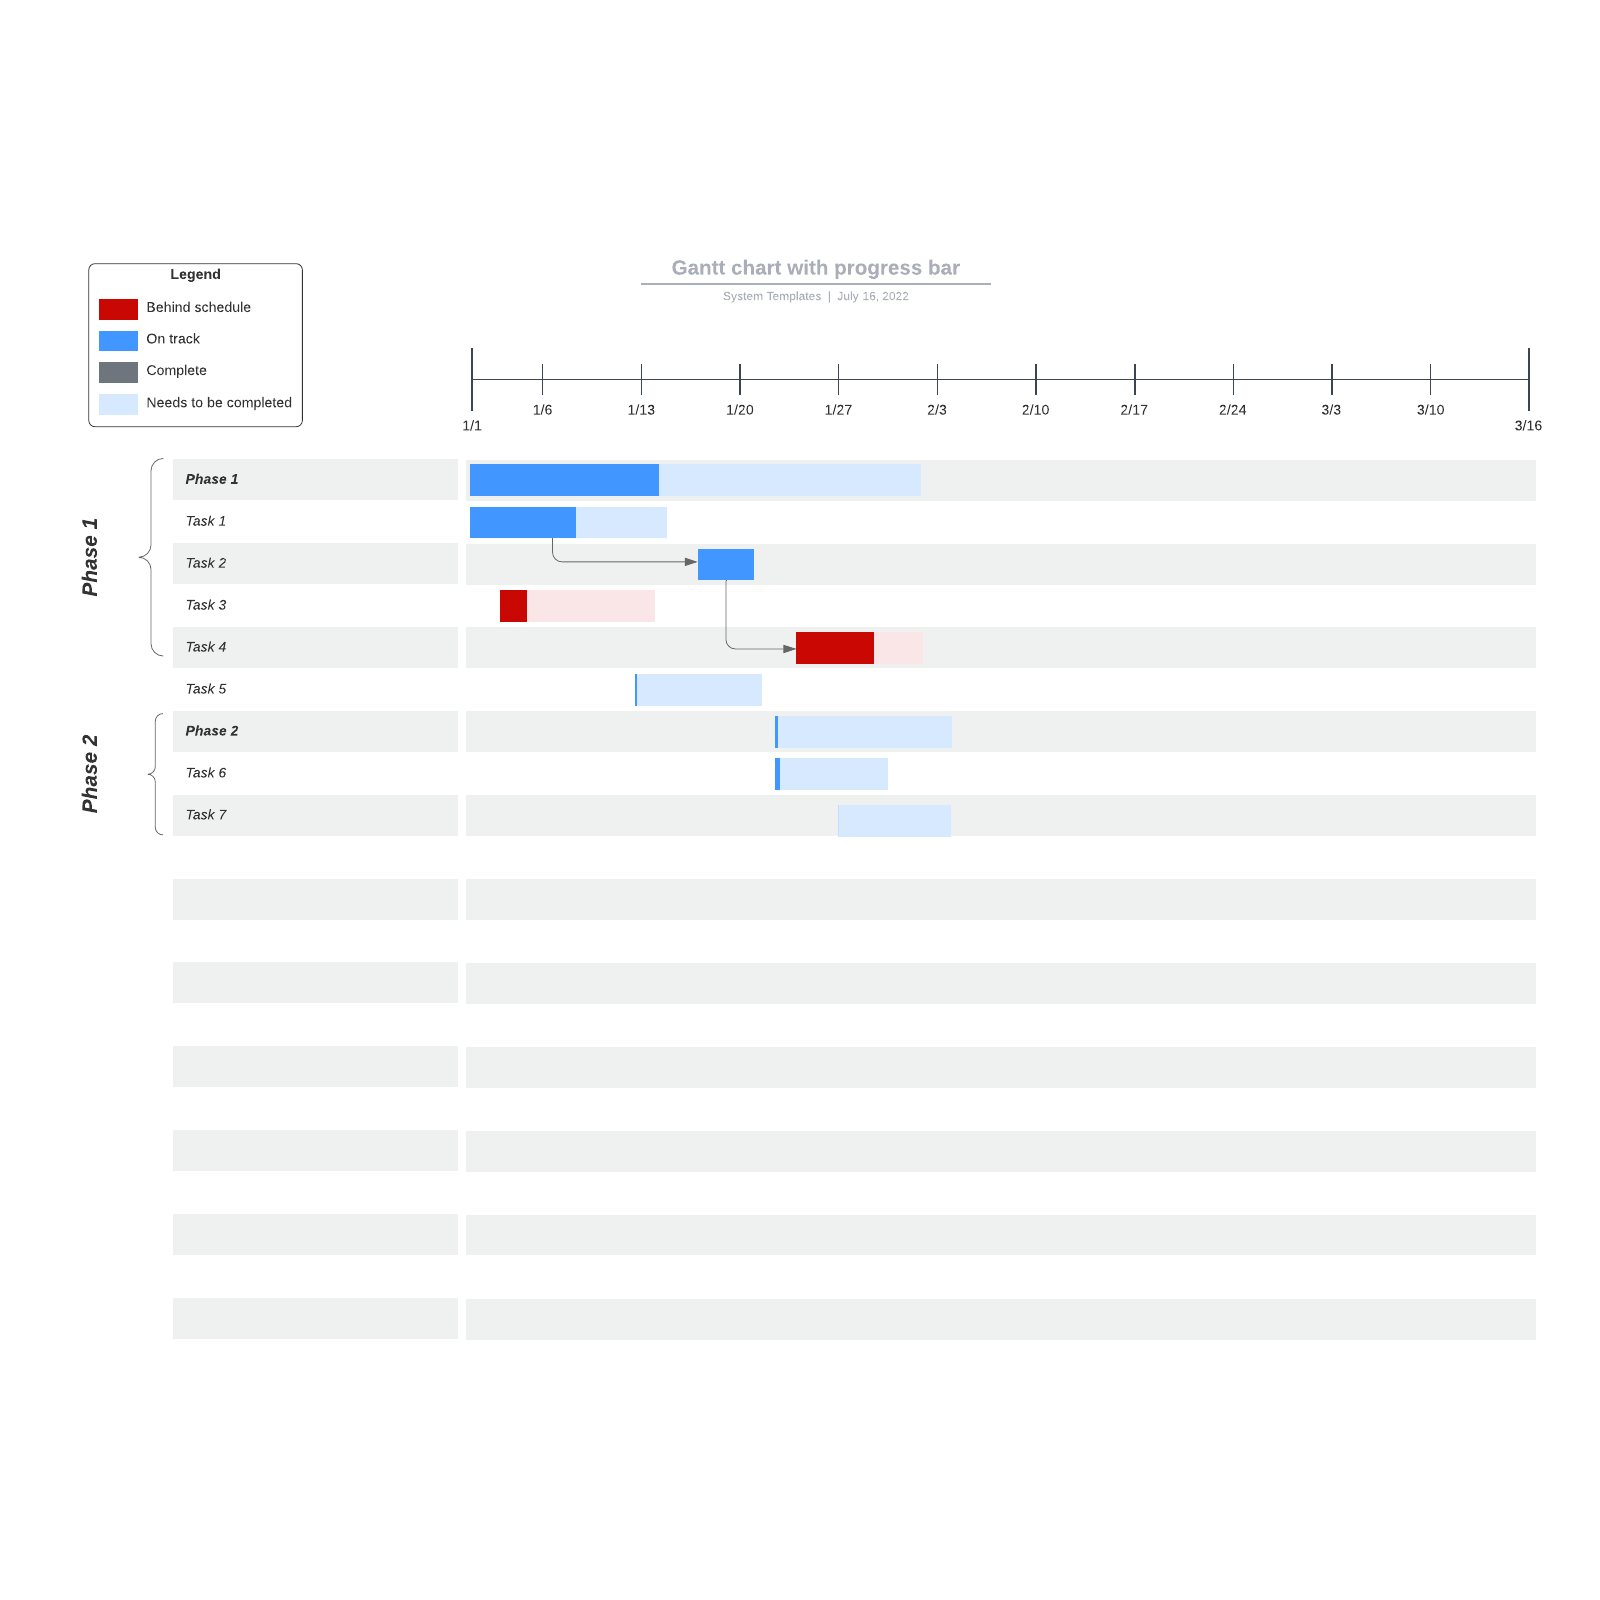 Gantt chart with progress bar